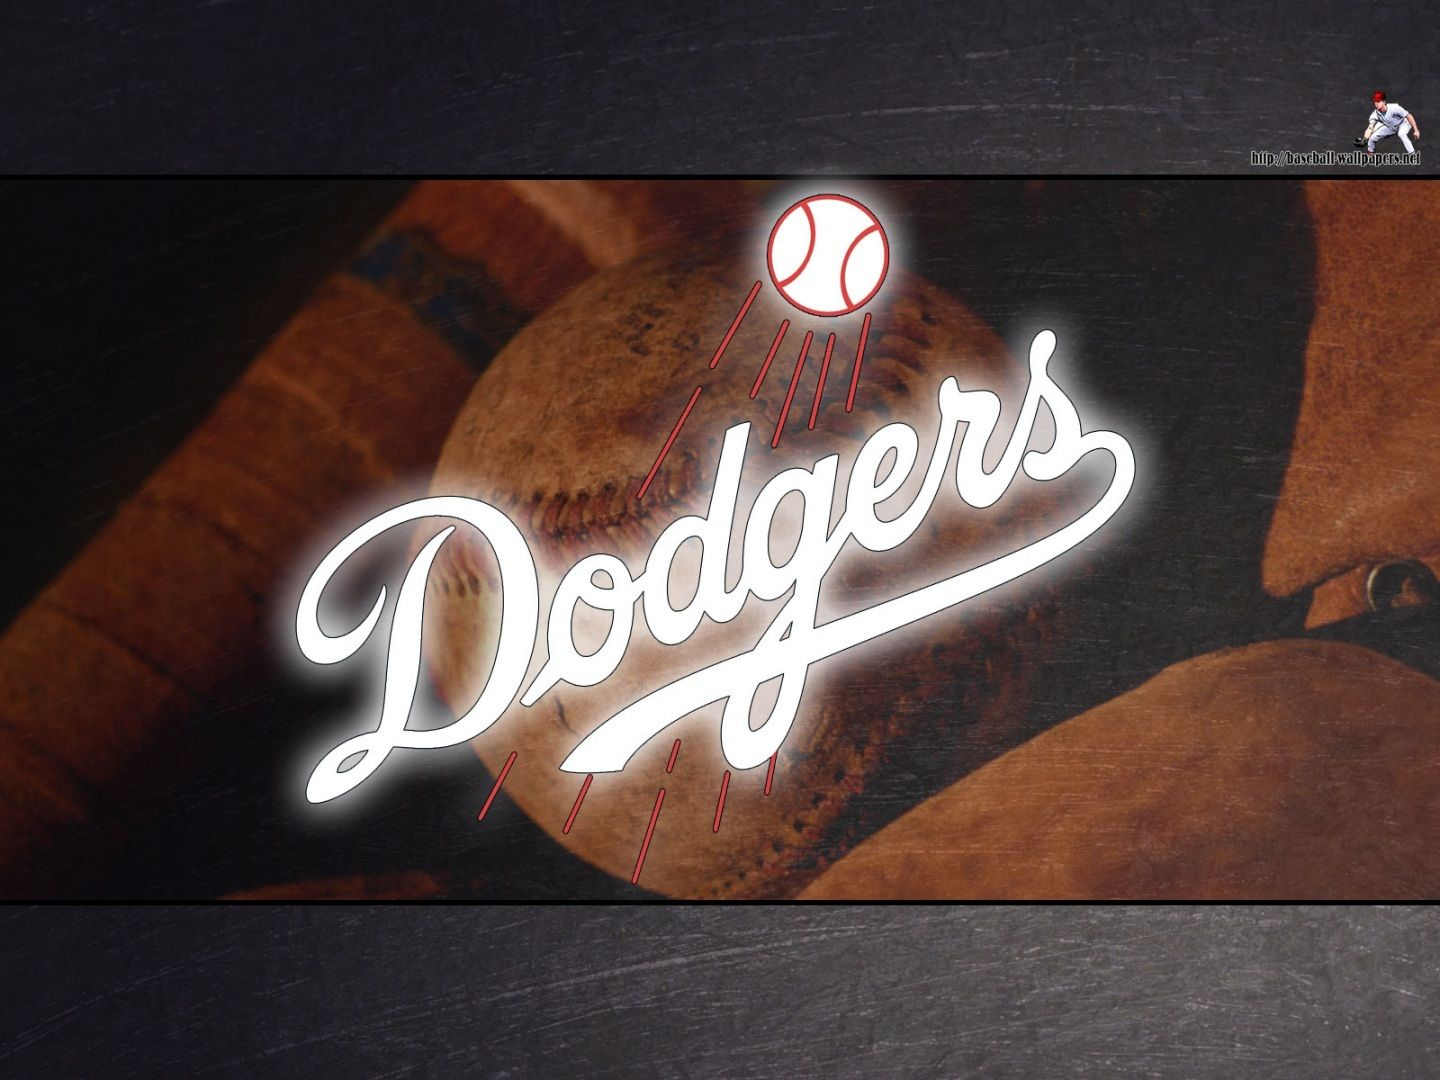 Baseball wallpapers los angeles dodgers wallpaper la dodgers direct baseball wallpapers los angeles dodgers wallpaper la dodgers altavistaventures Image collections